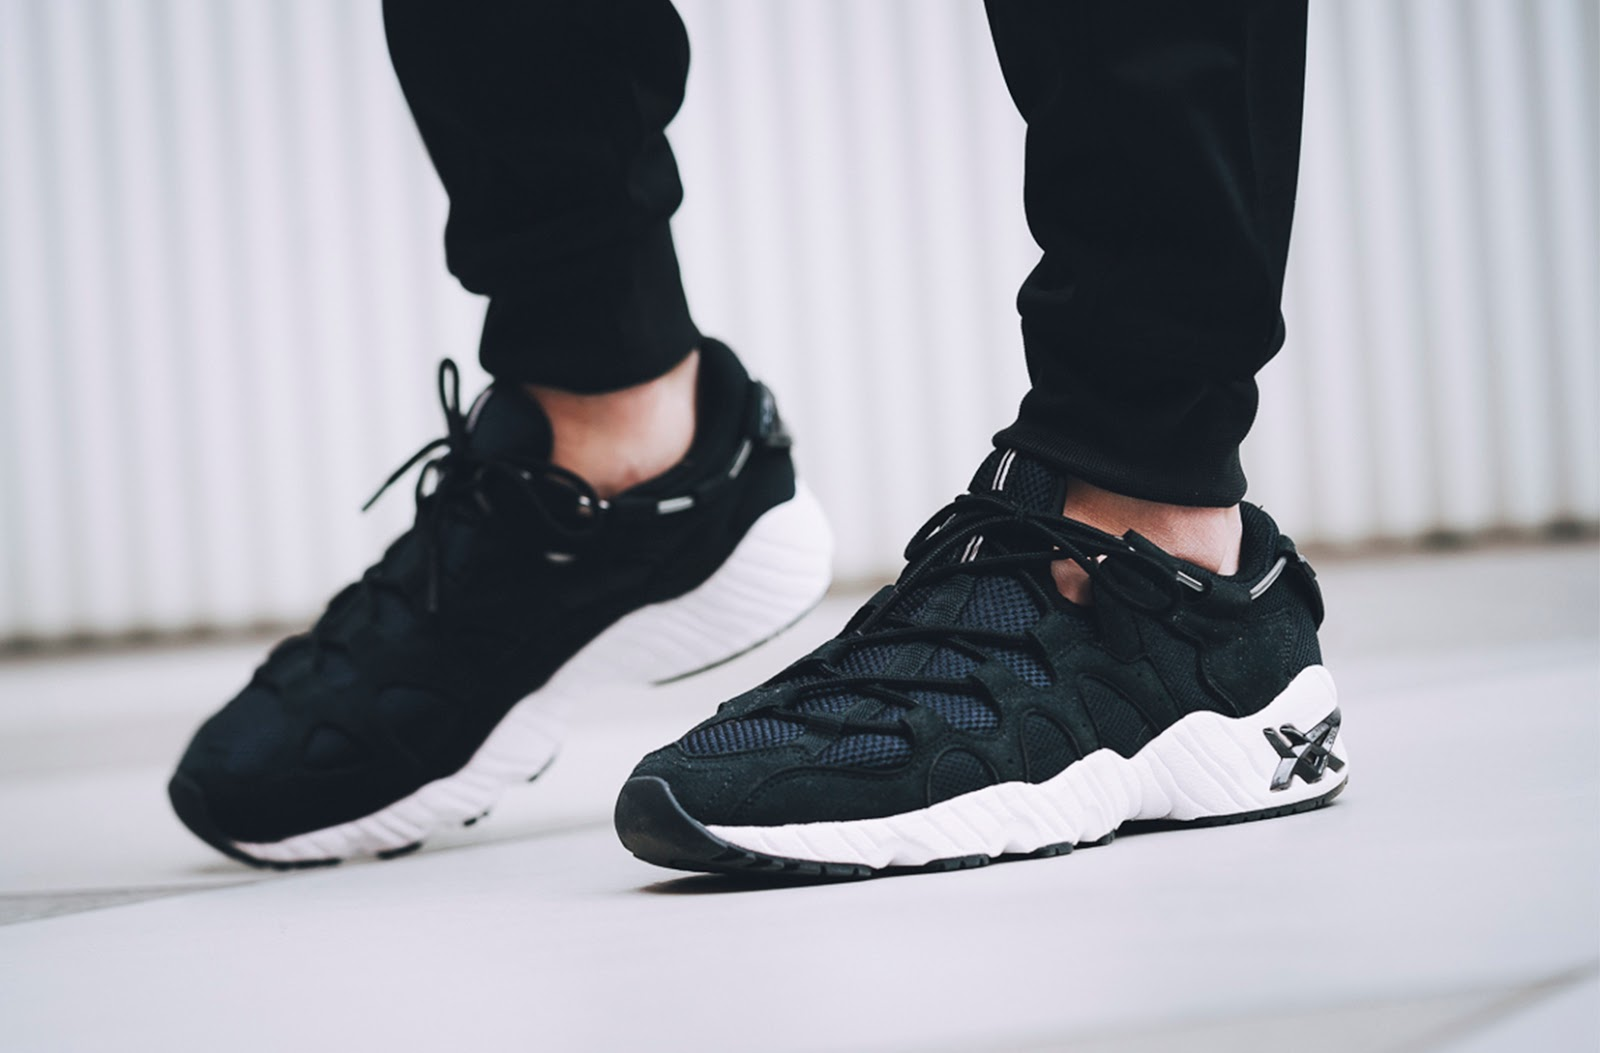 ASICS TIGER GEL MAI AM FUß